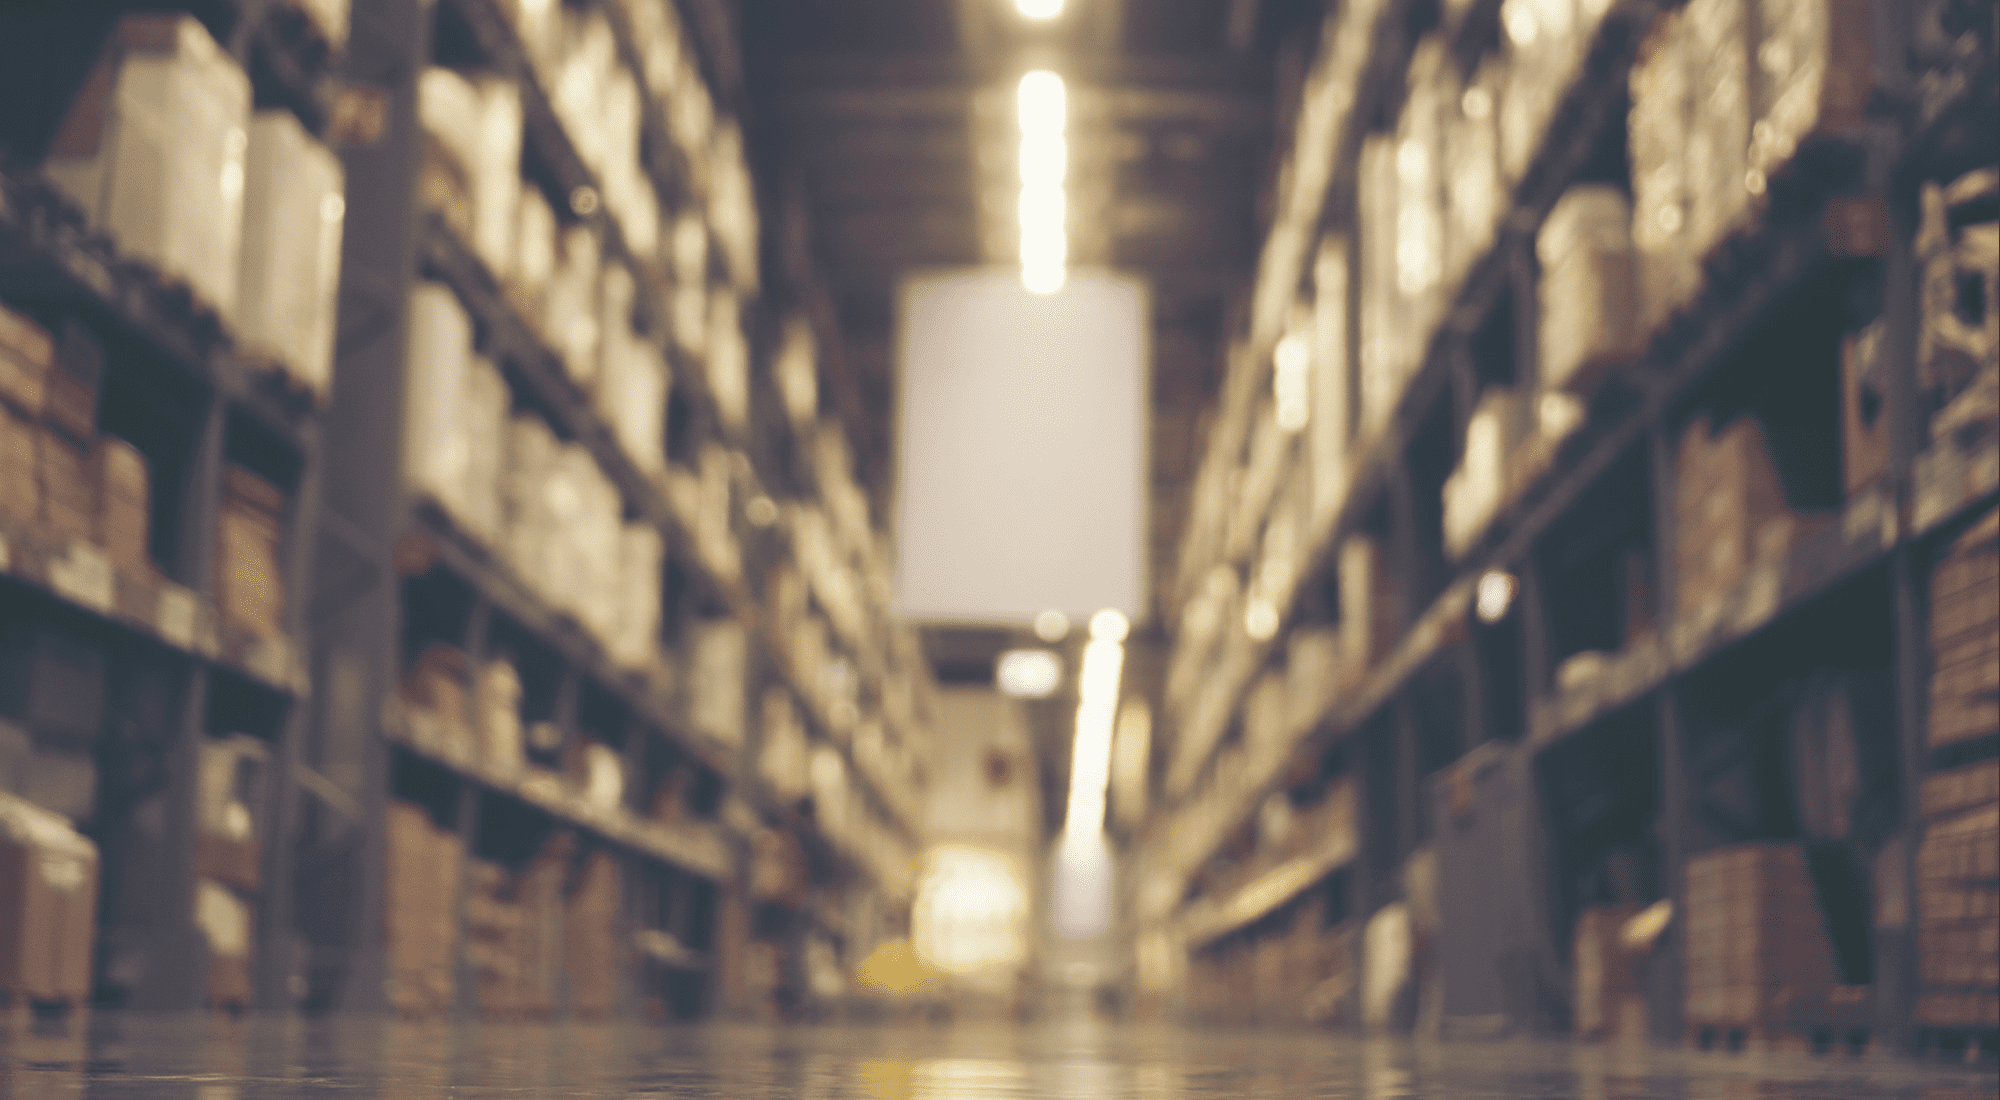 Monarch Brands Supply Chain Management and Risk Mitigation Strategy